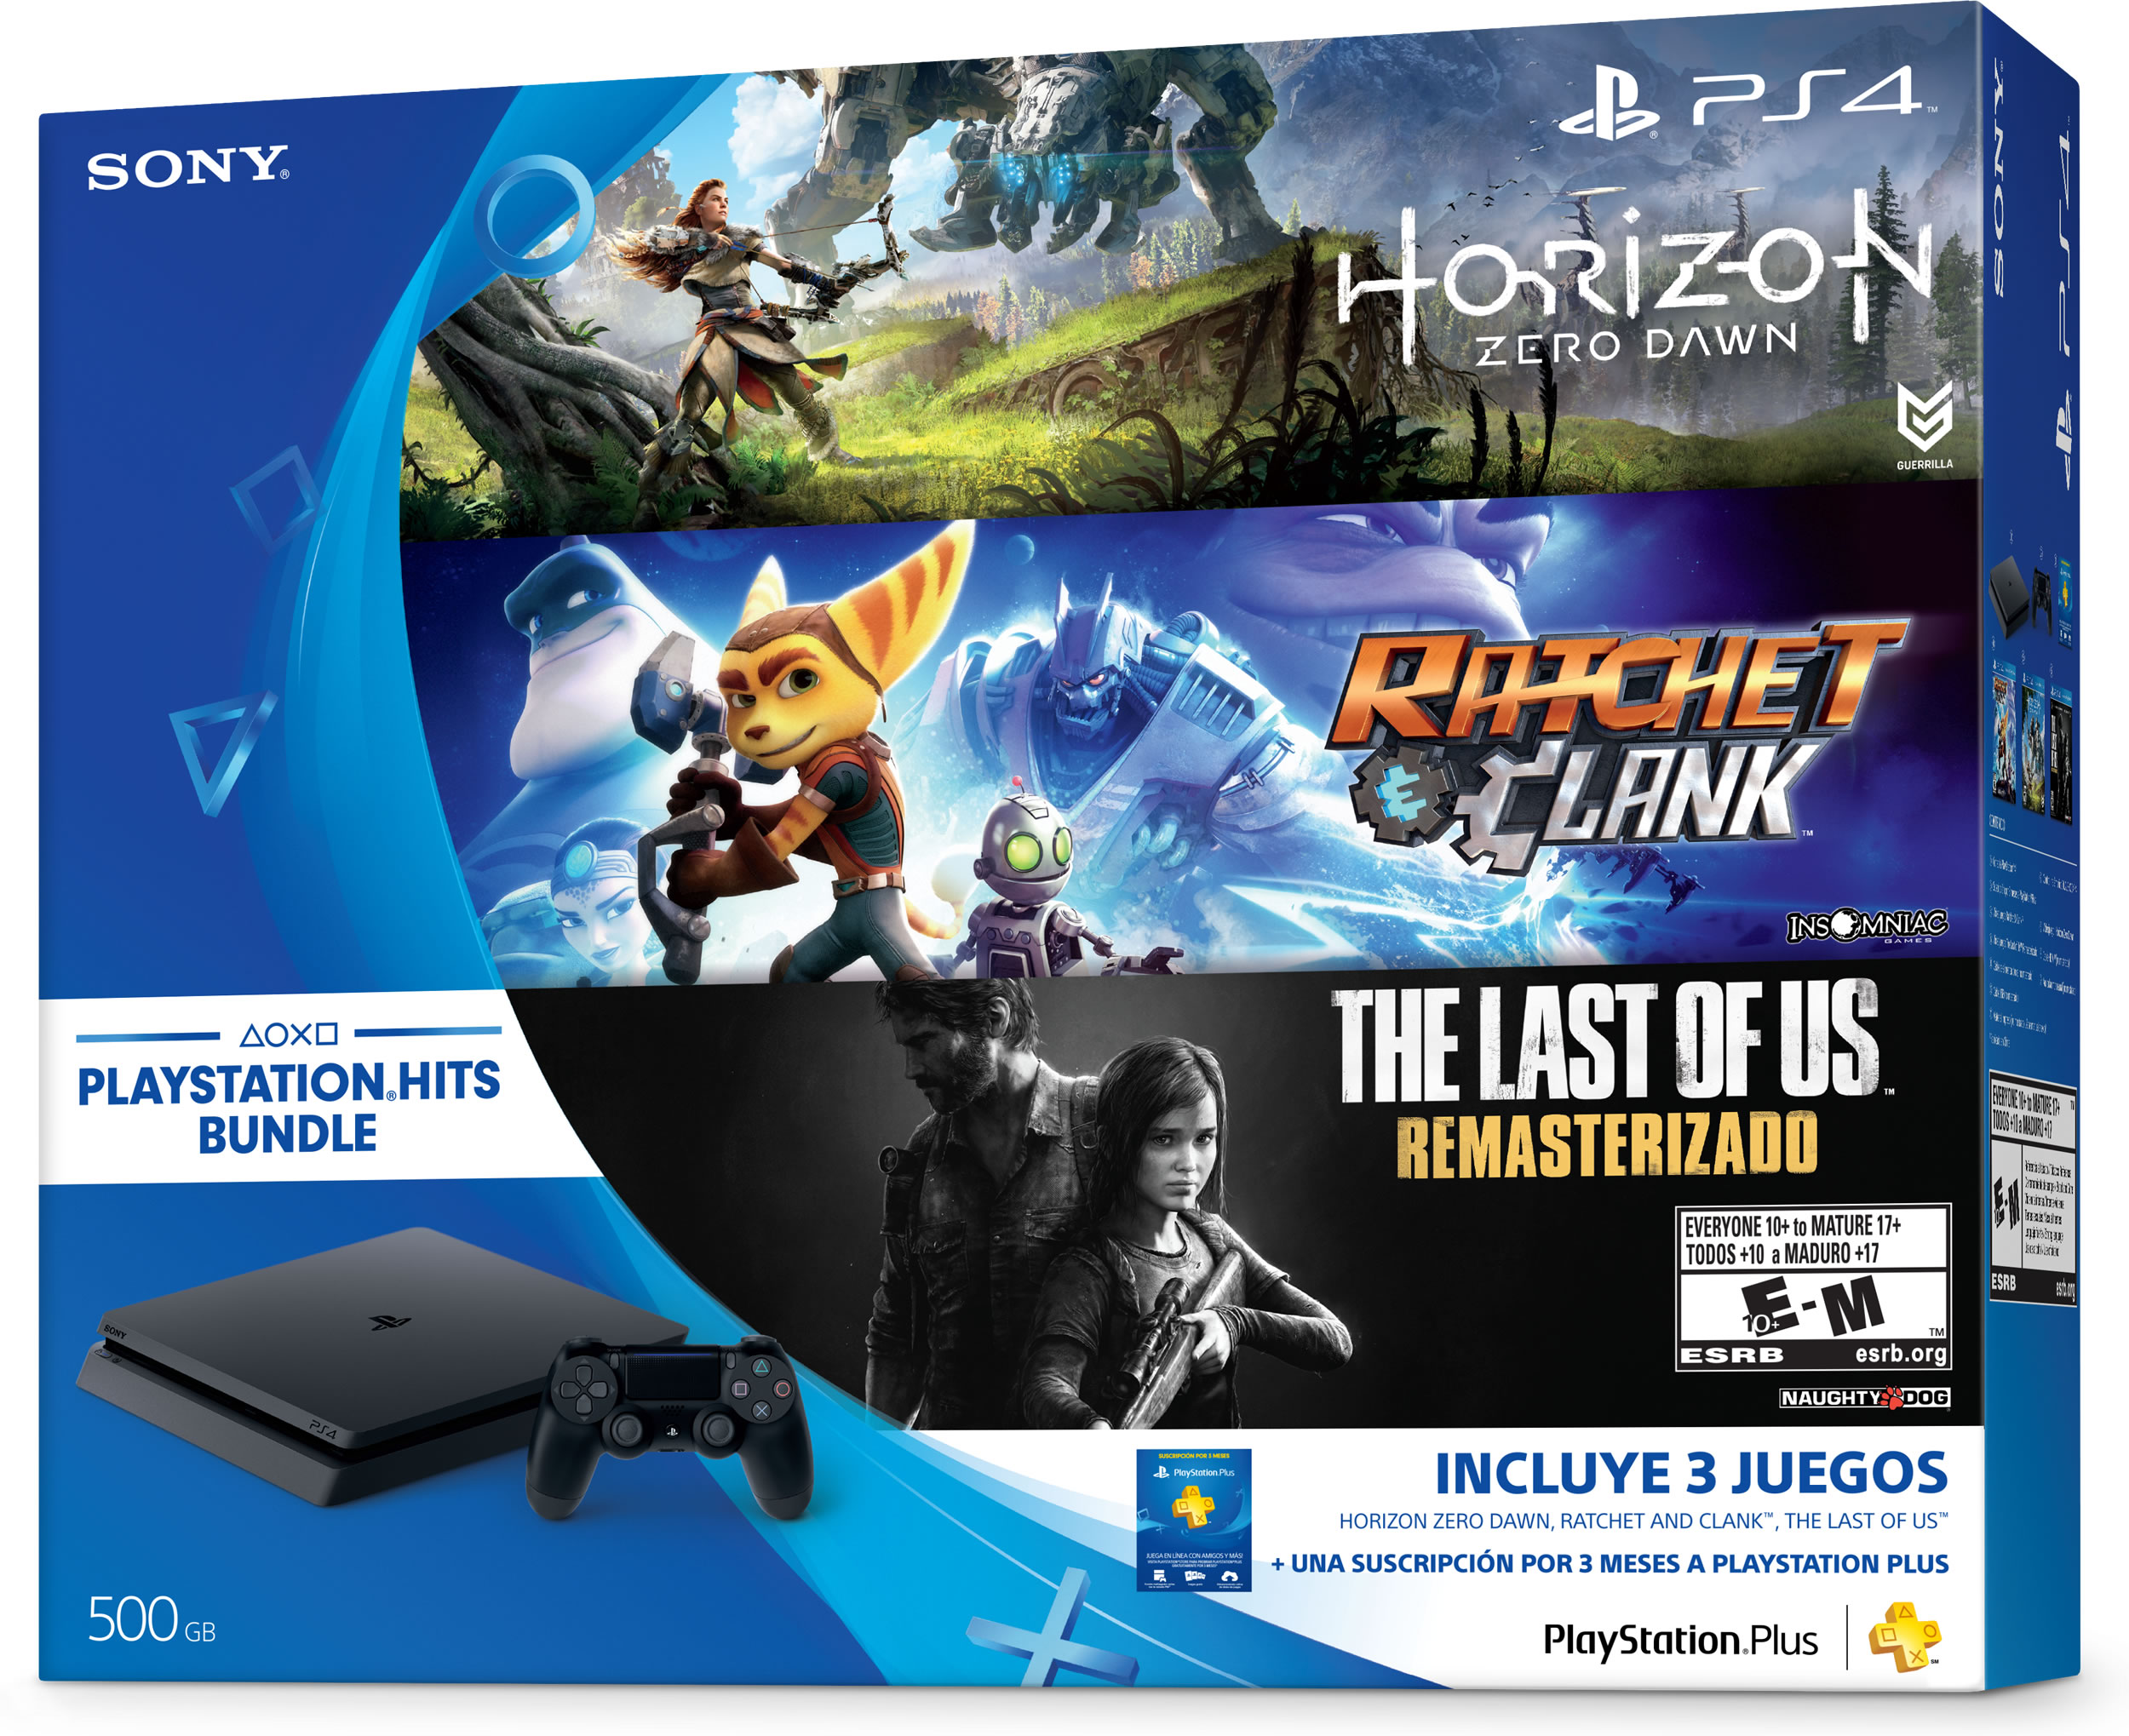 PlayStation Hits Bundle.